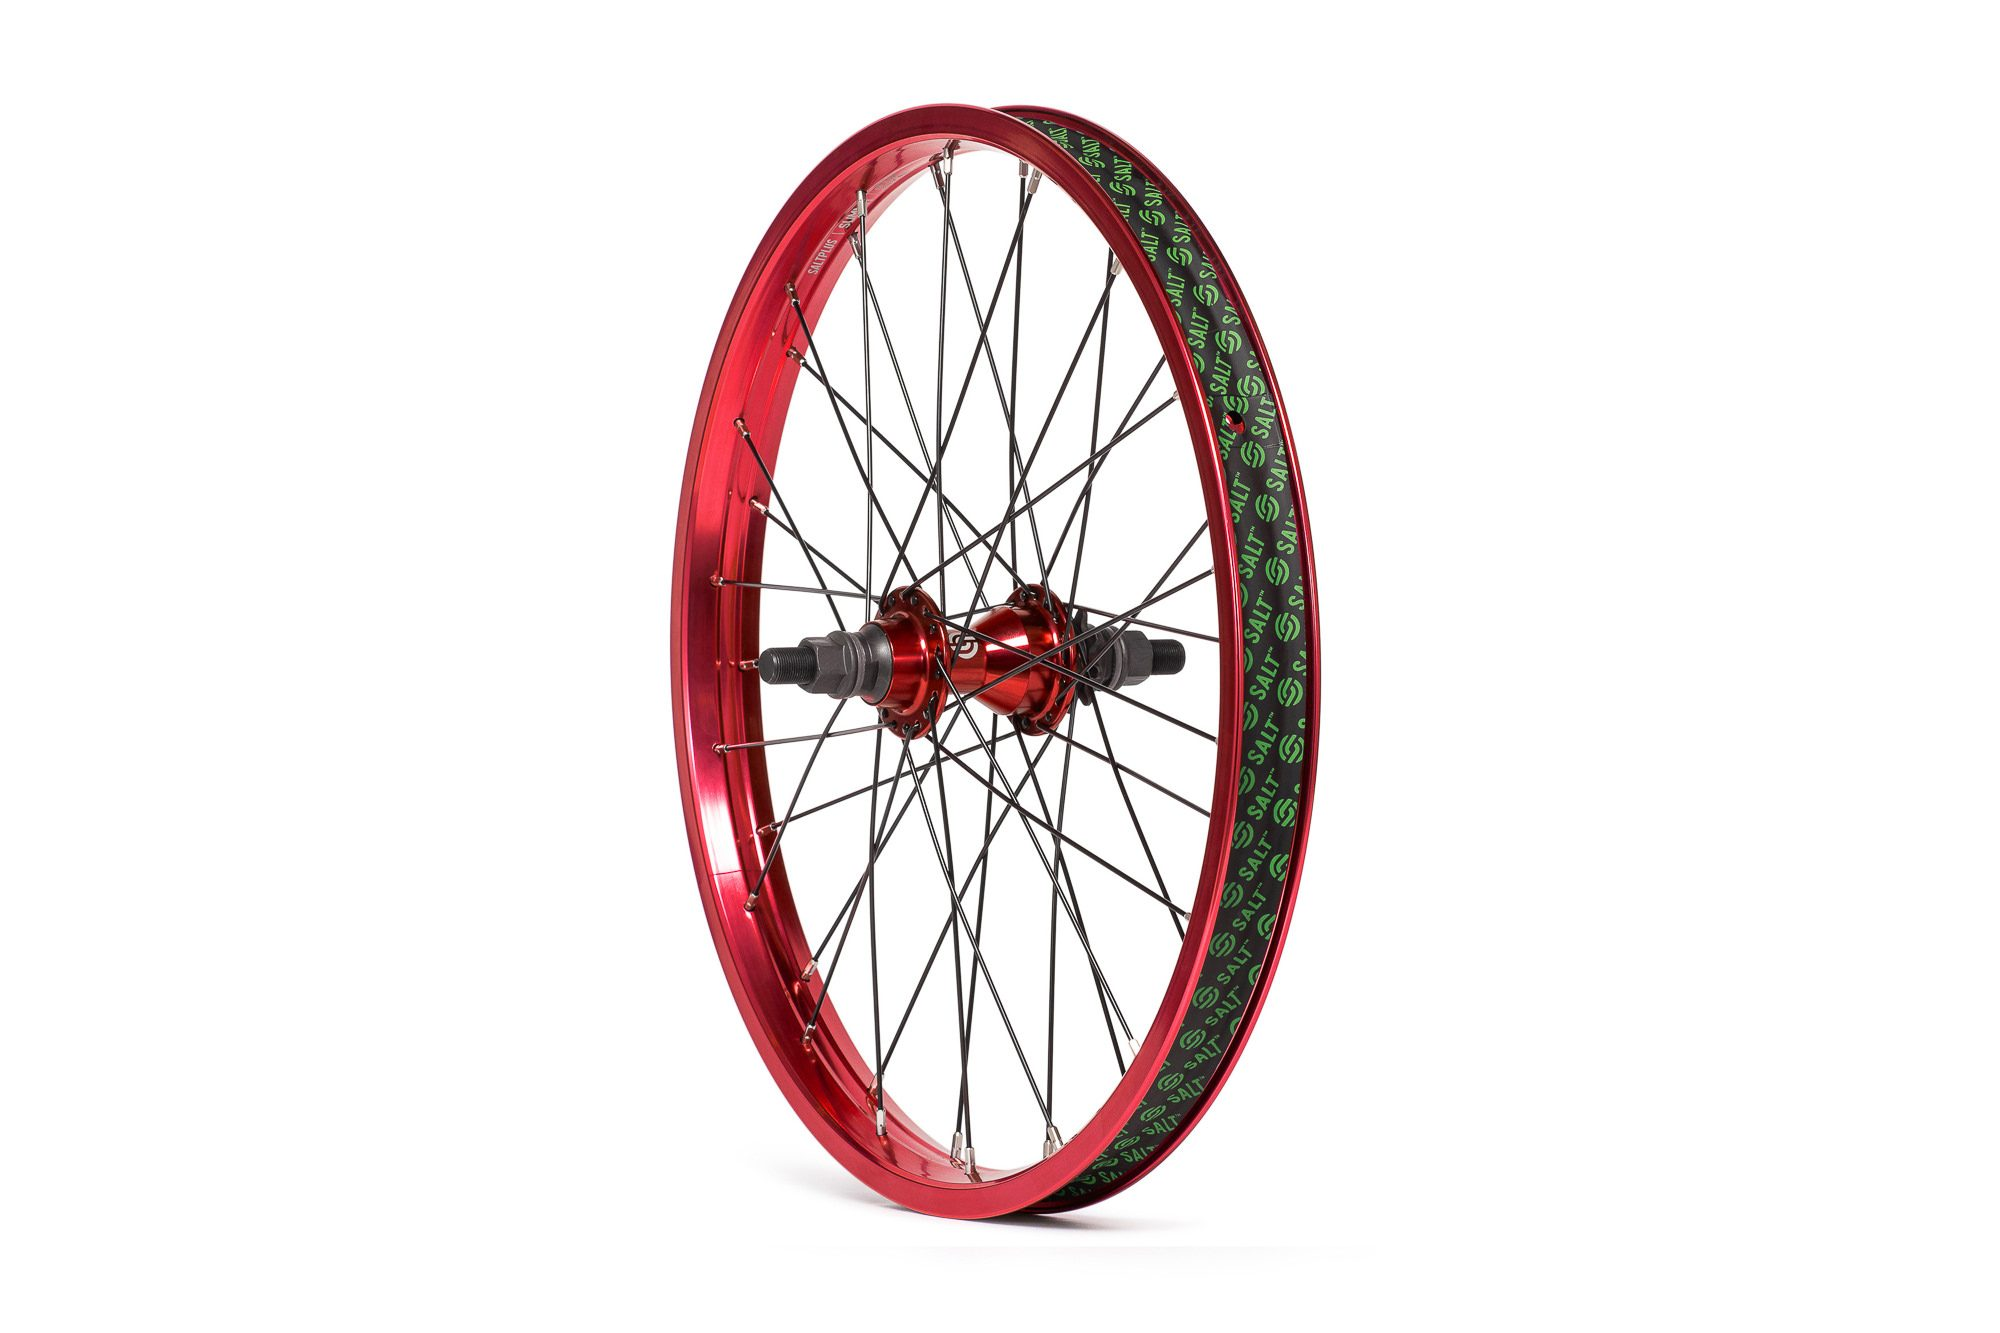 Salt_Everest_CS_rear_wheel_red_01